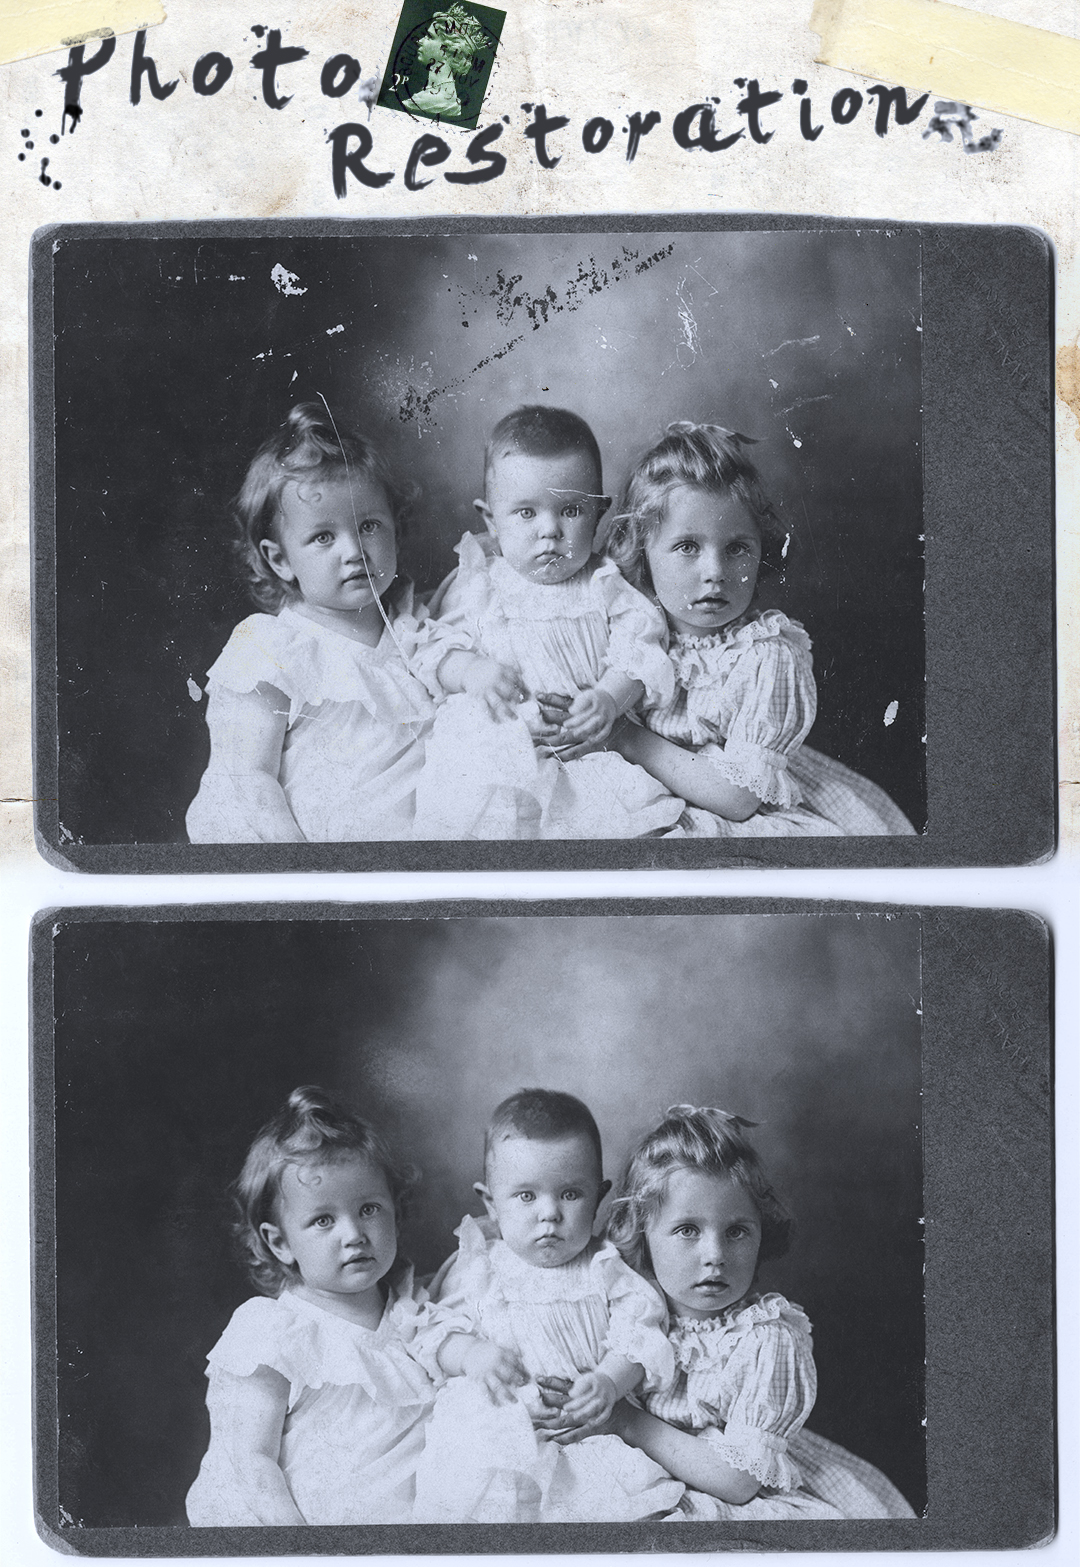 Photo restoration - before & after